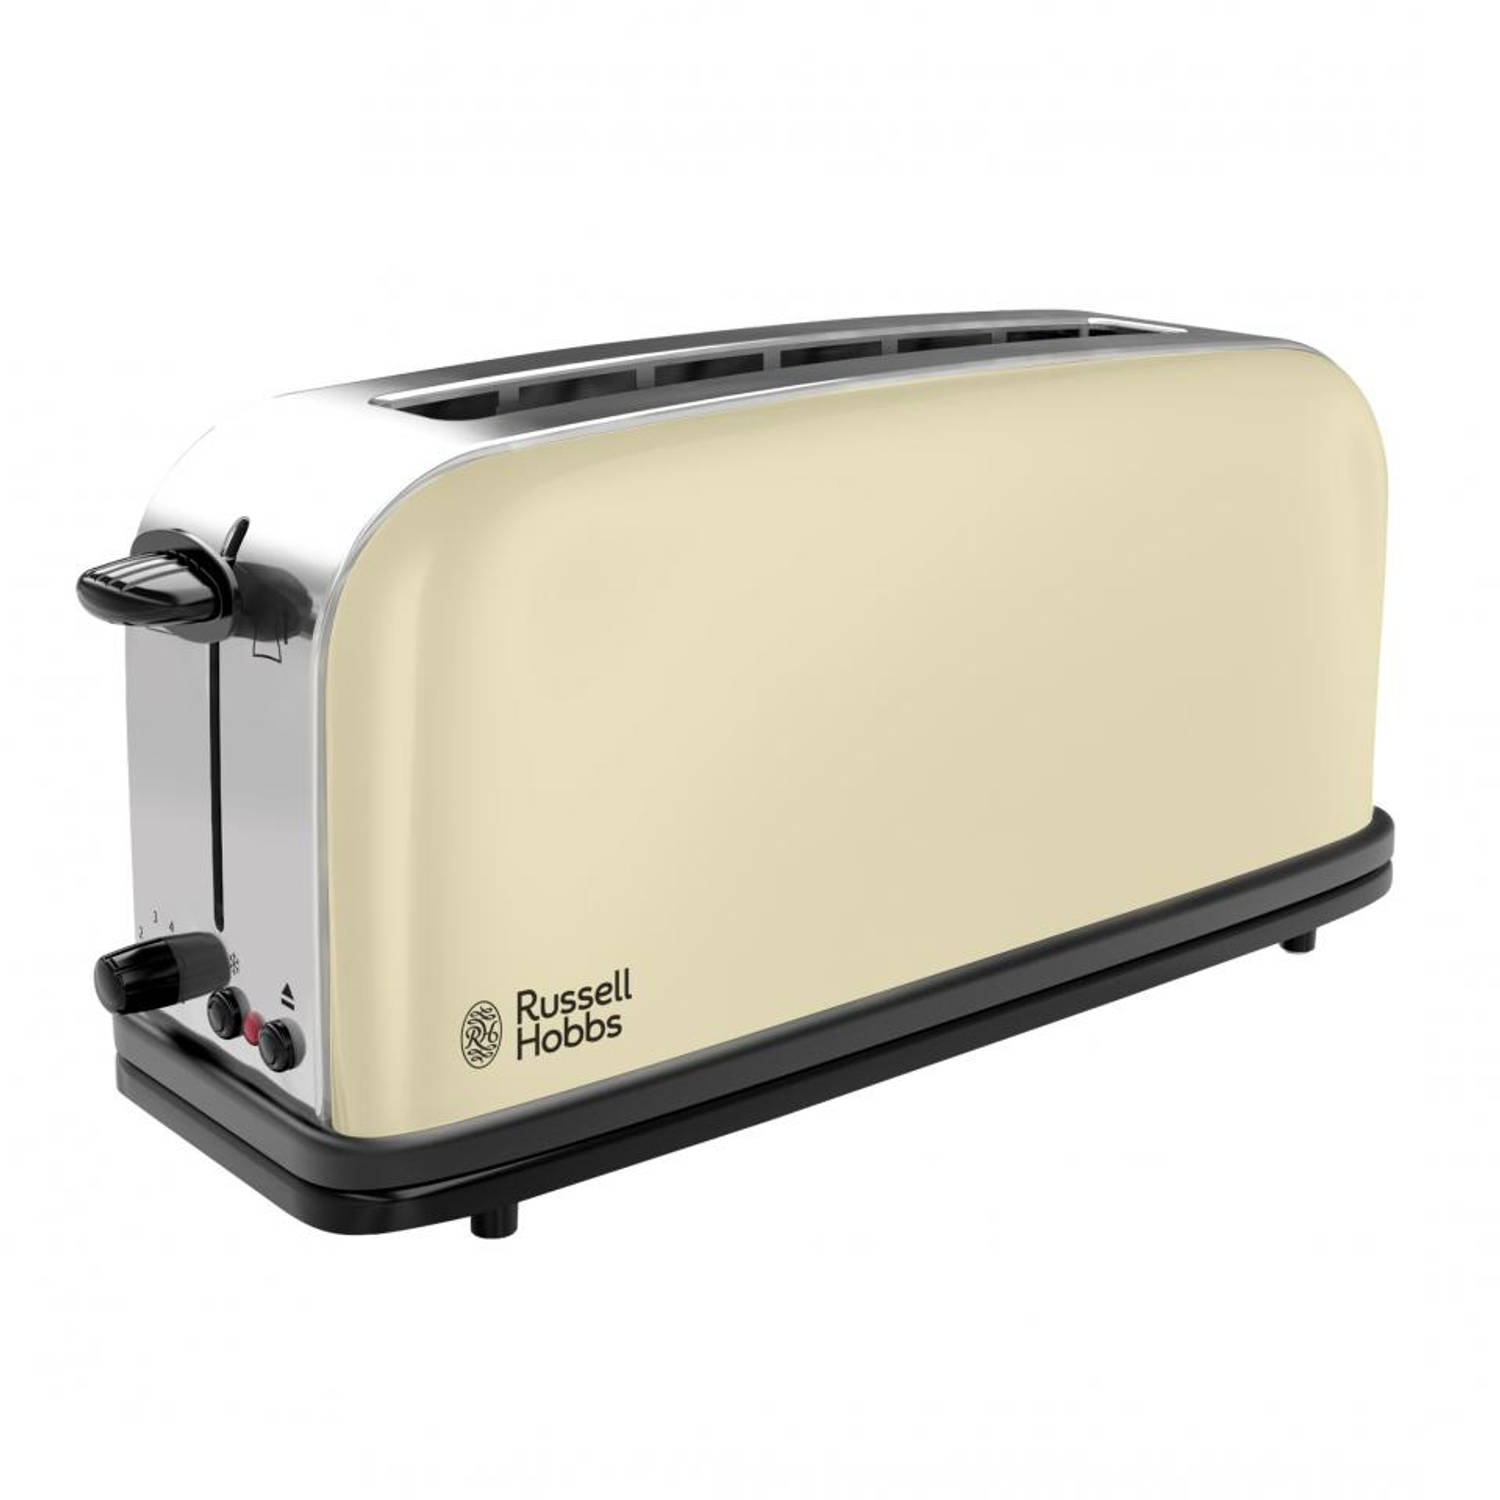 Russell Hobbs Colours Classic Cream Long Shot broodrooster 21395-56